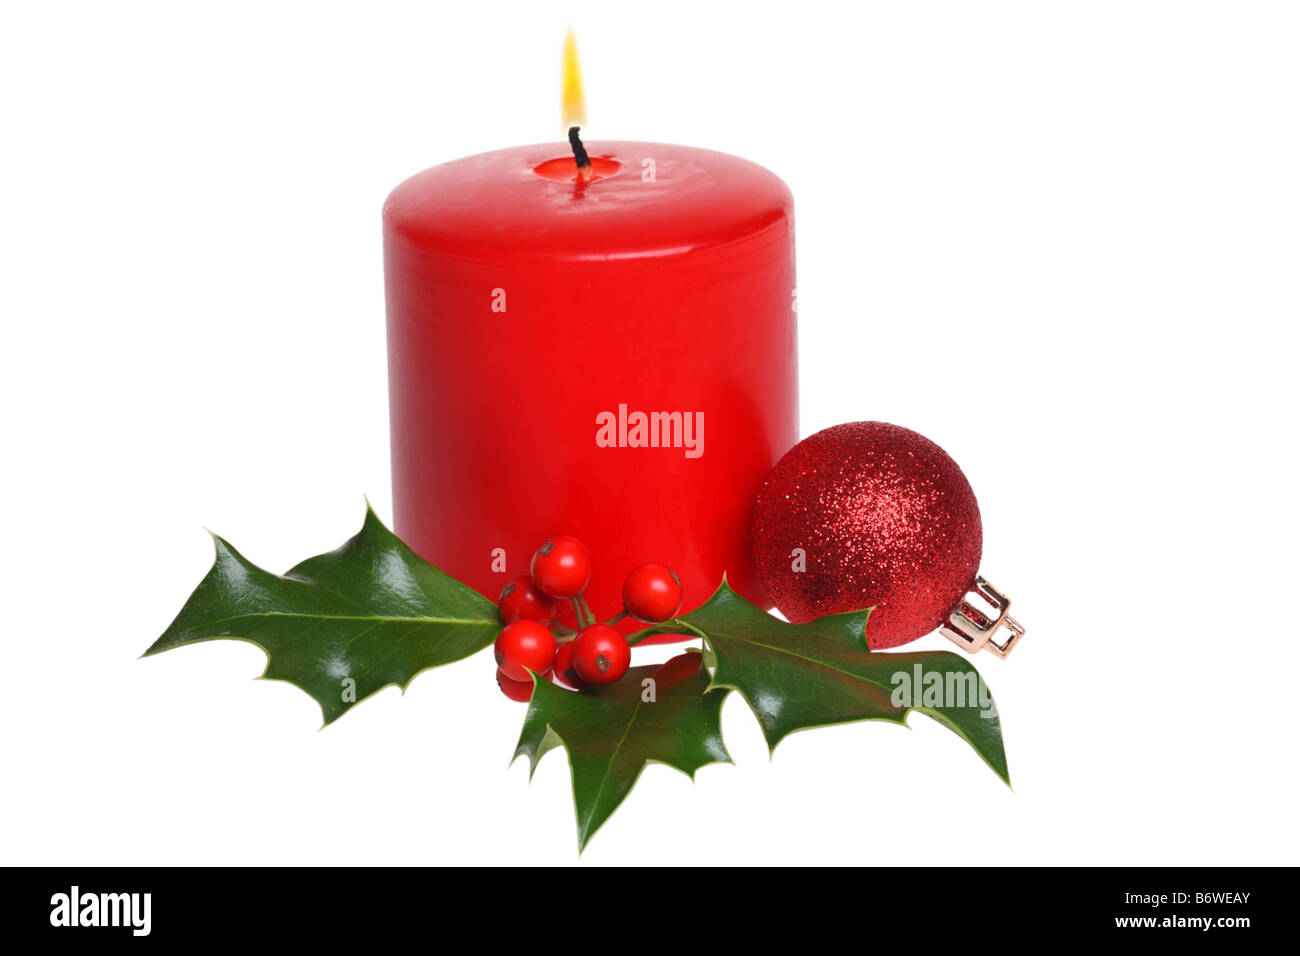 Christmas candle with holly and ornament cut out isolated on white background - Stock Image